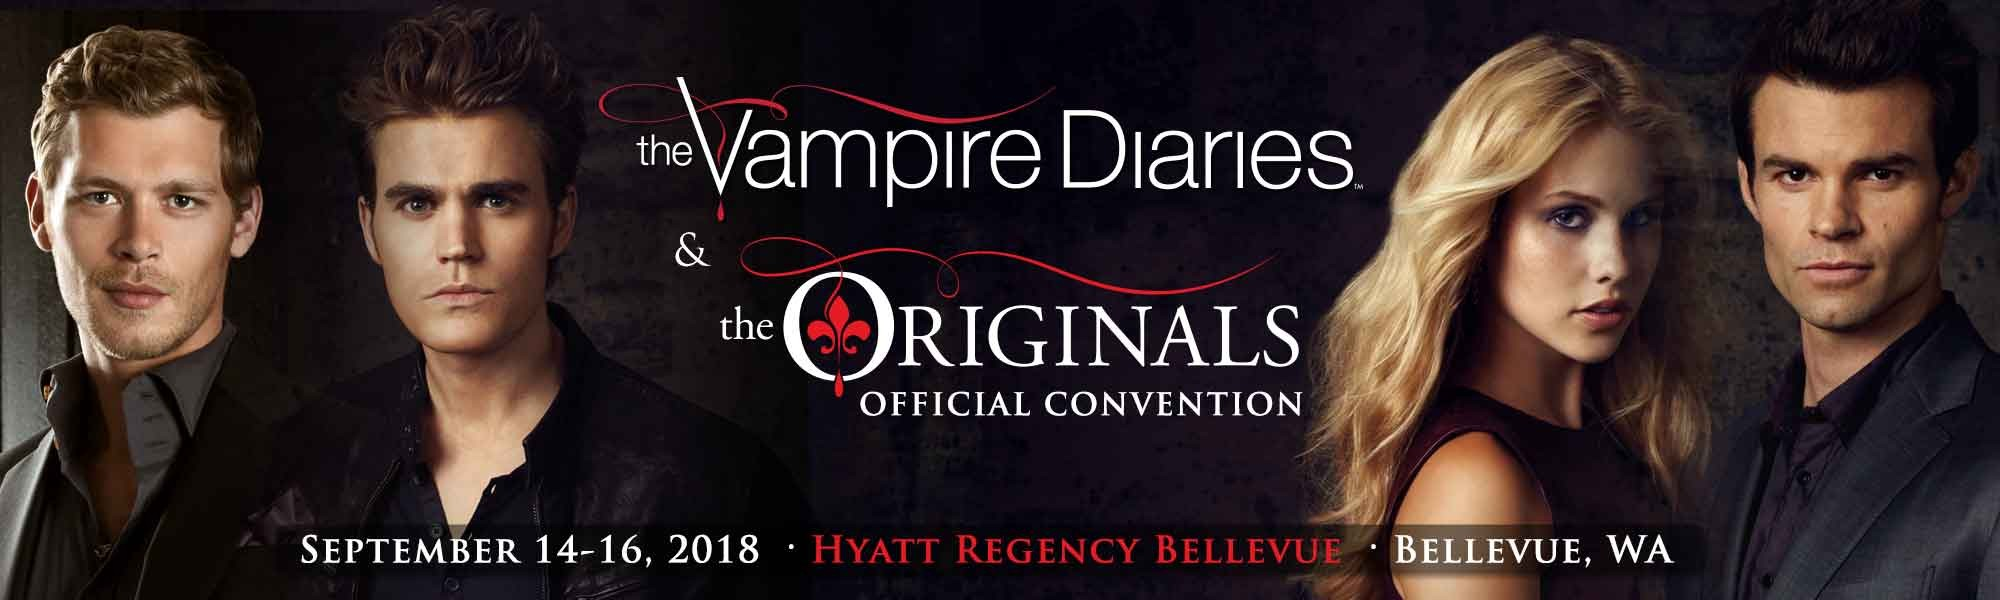 The vampire diaries the originals convention at hyatt regency if the vampire diaries and the originals are your favorite shows about werewolves and blood sucking immortals heres a convention for you m4hsunfo